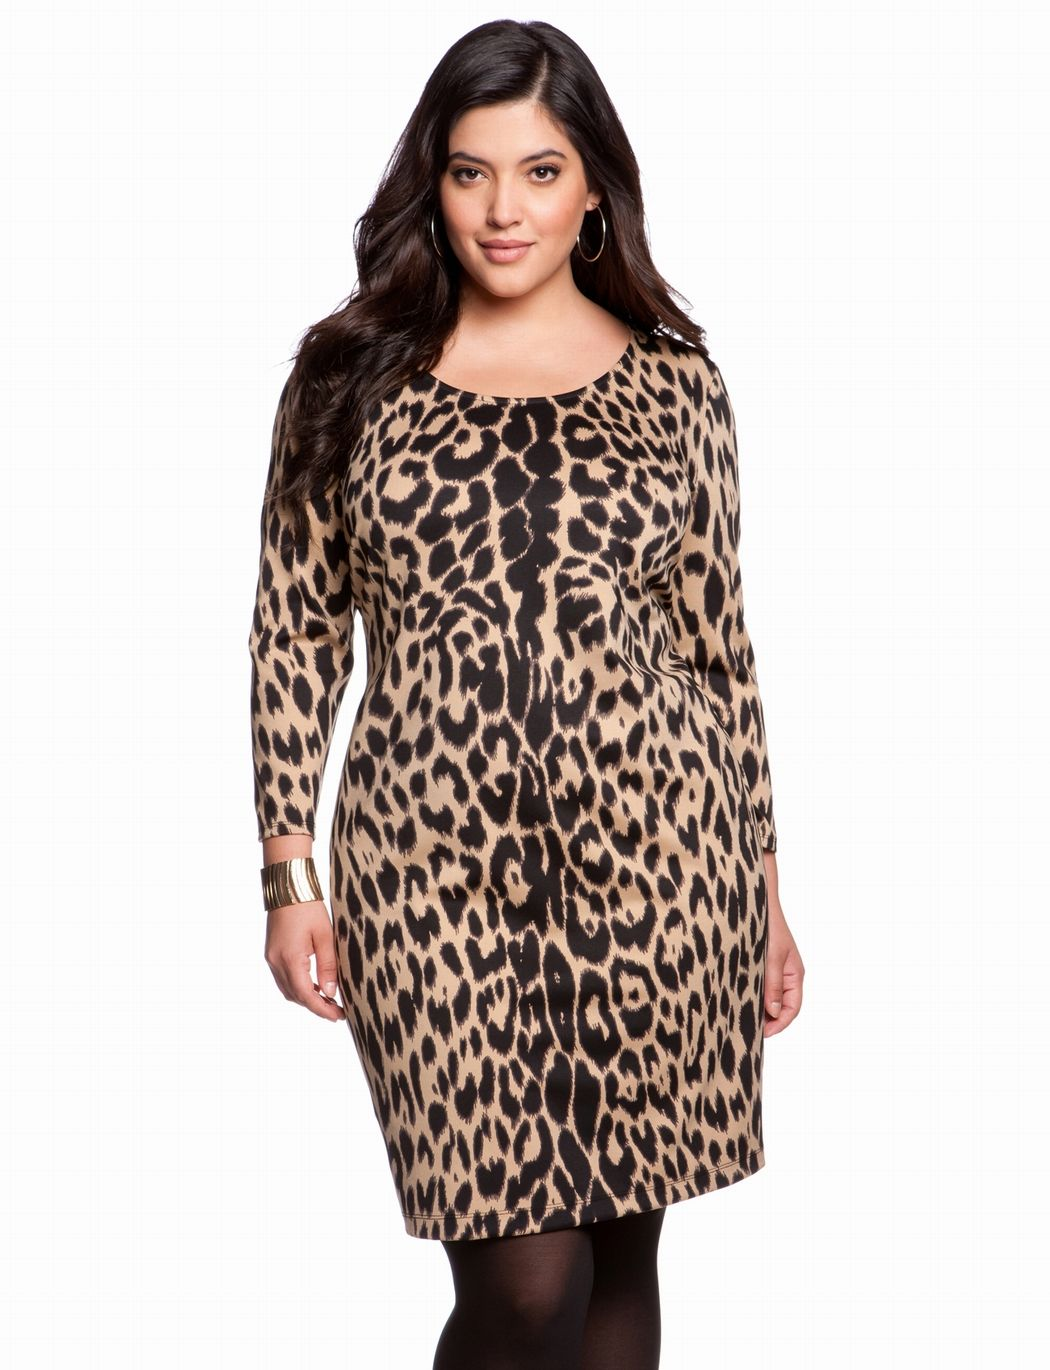 Leopard Print Dress My Style Pinterest Leopards Printing And